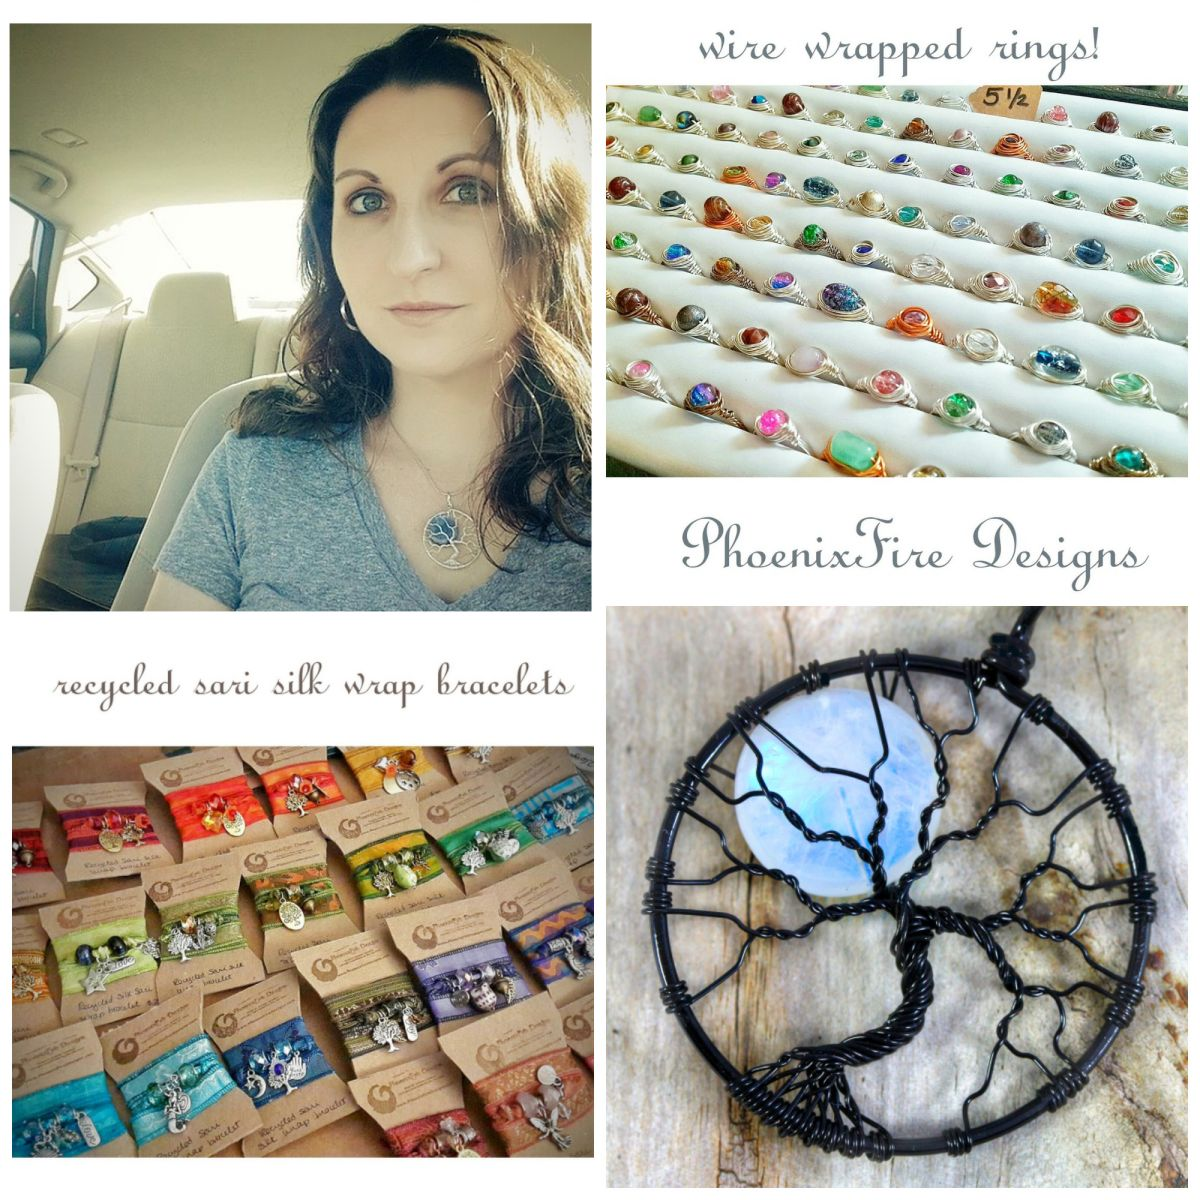 Sampling of some of the amazing handmade items by PhoenixFire ...